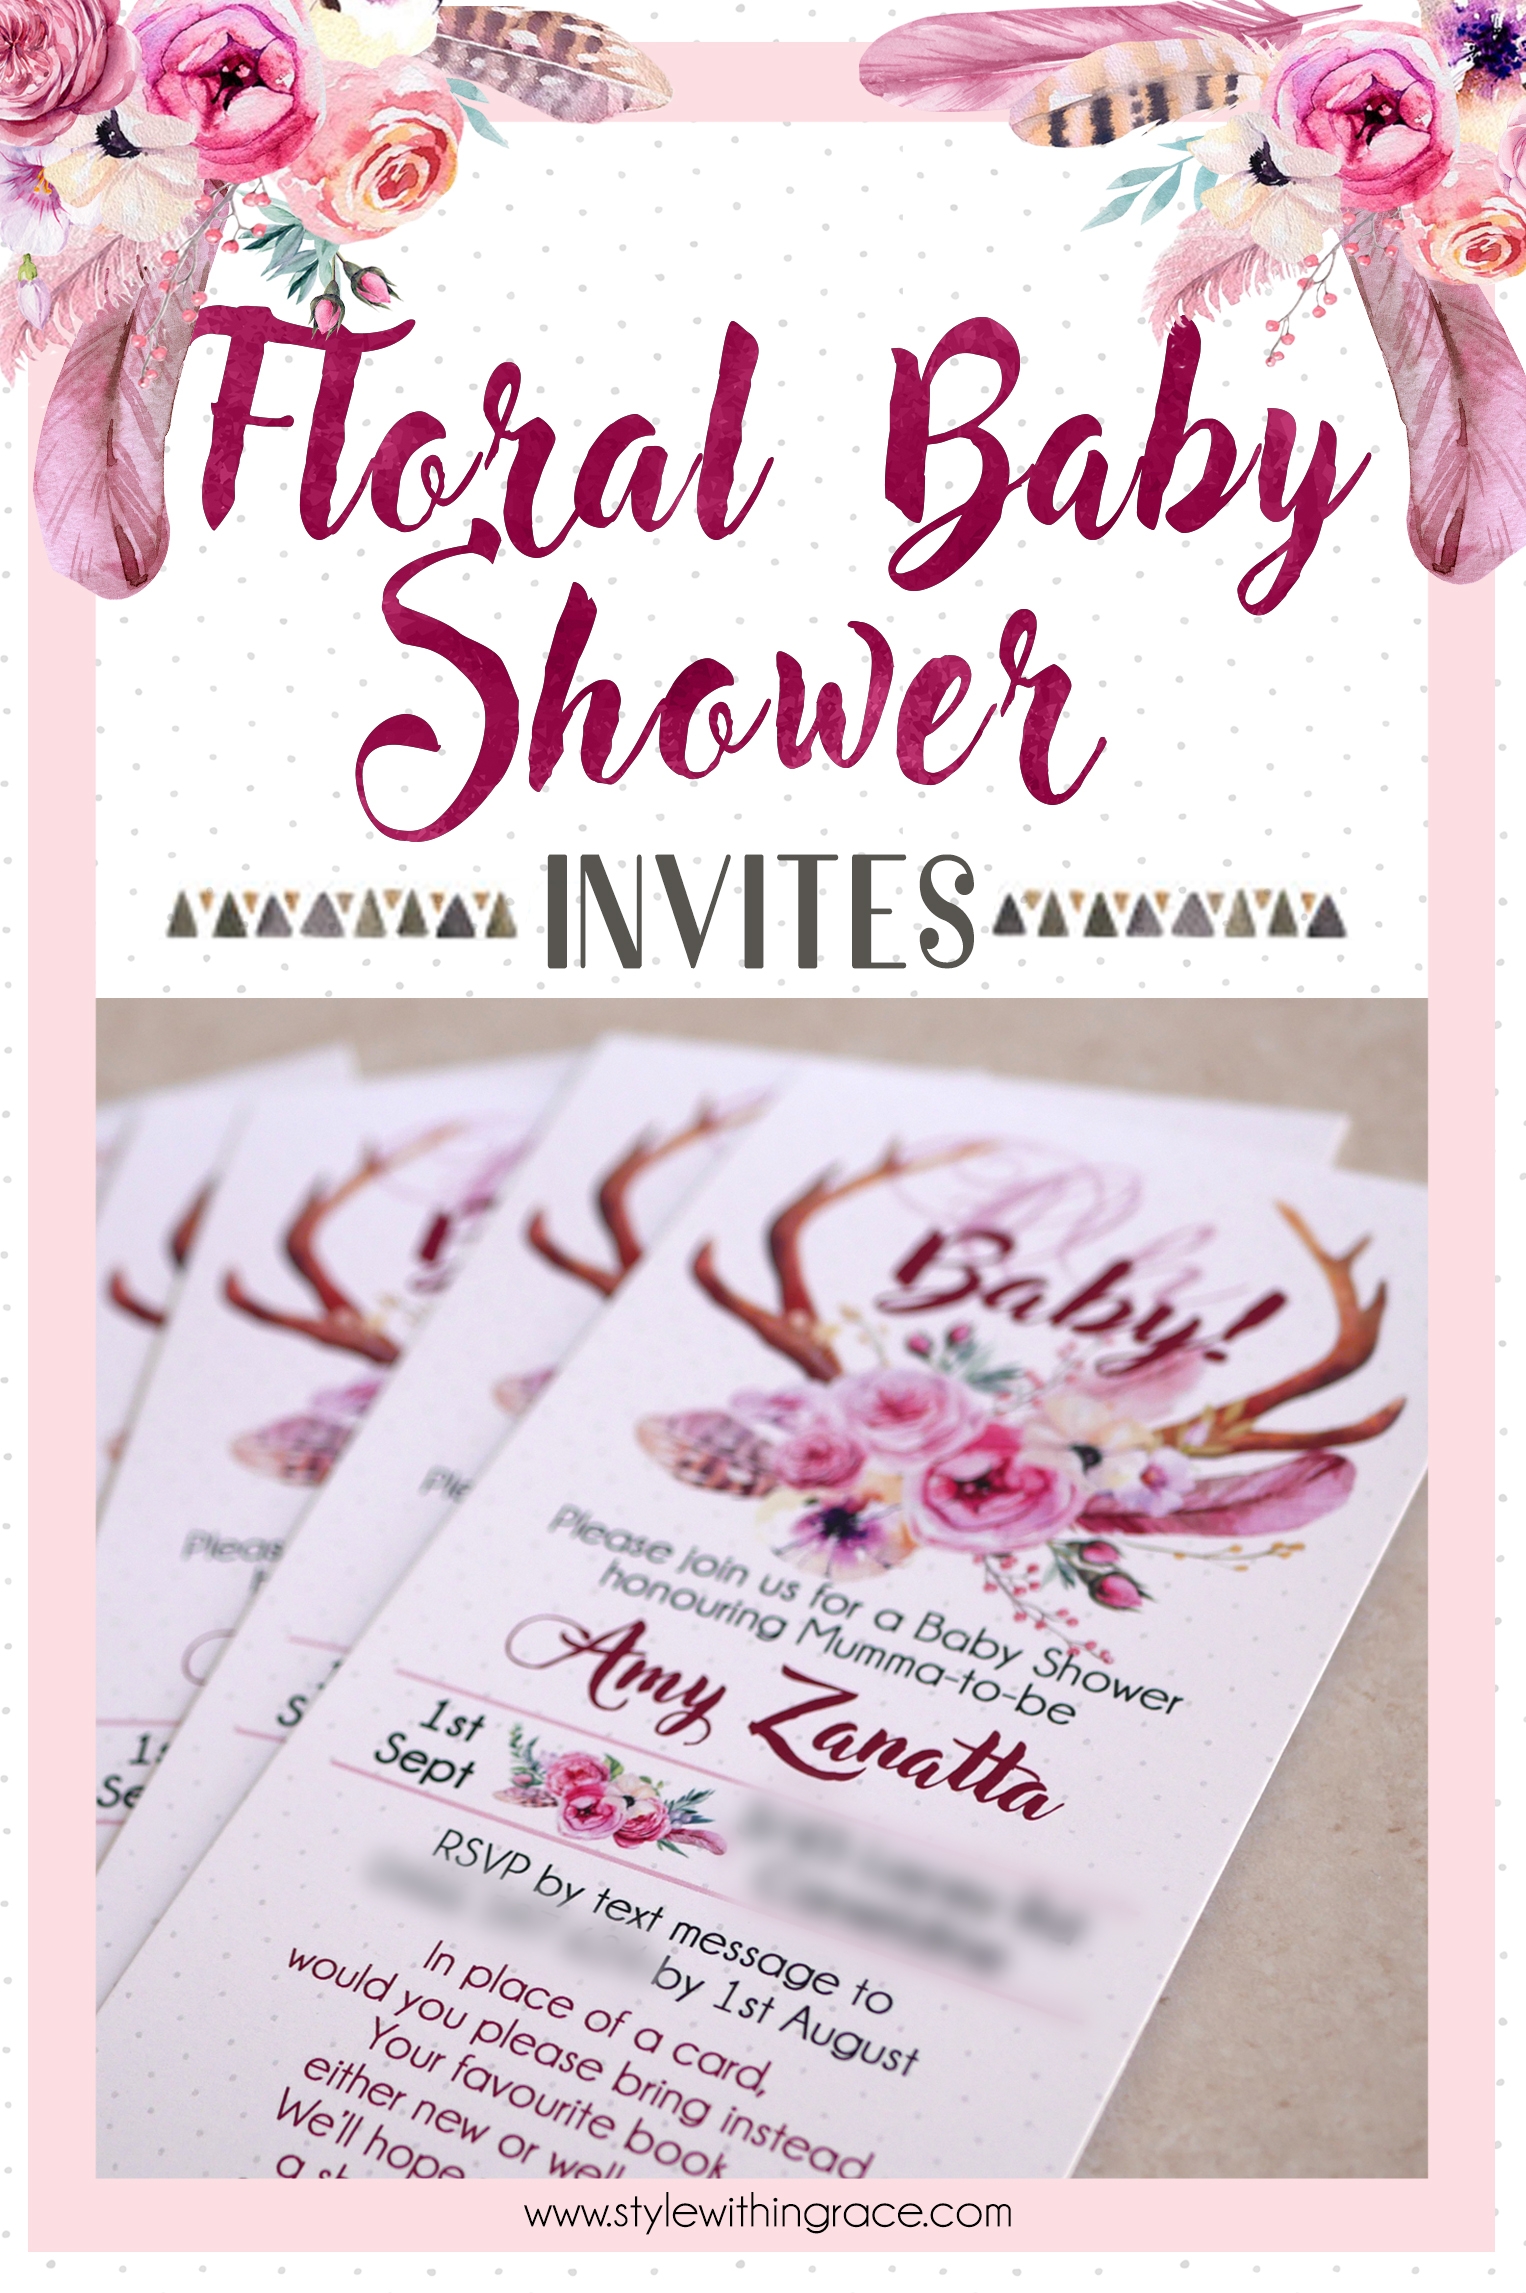 Floral Baby Shower Pinterest Graphic - Invites 02